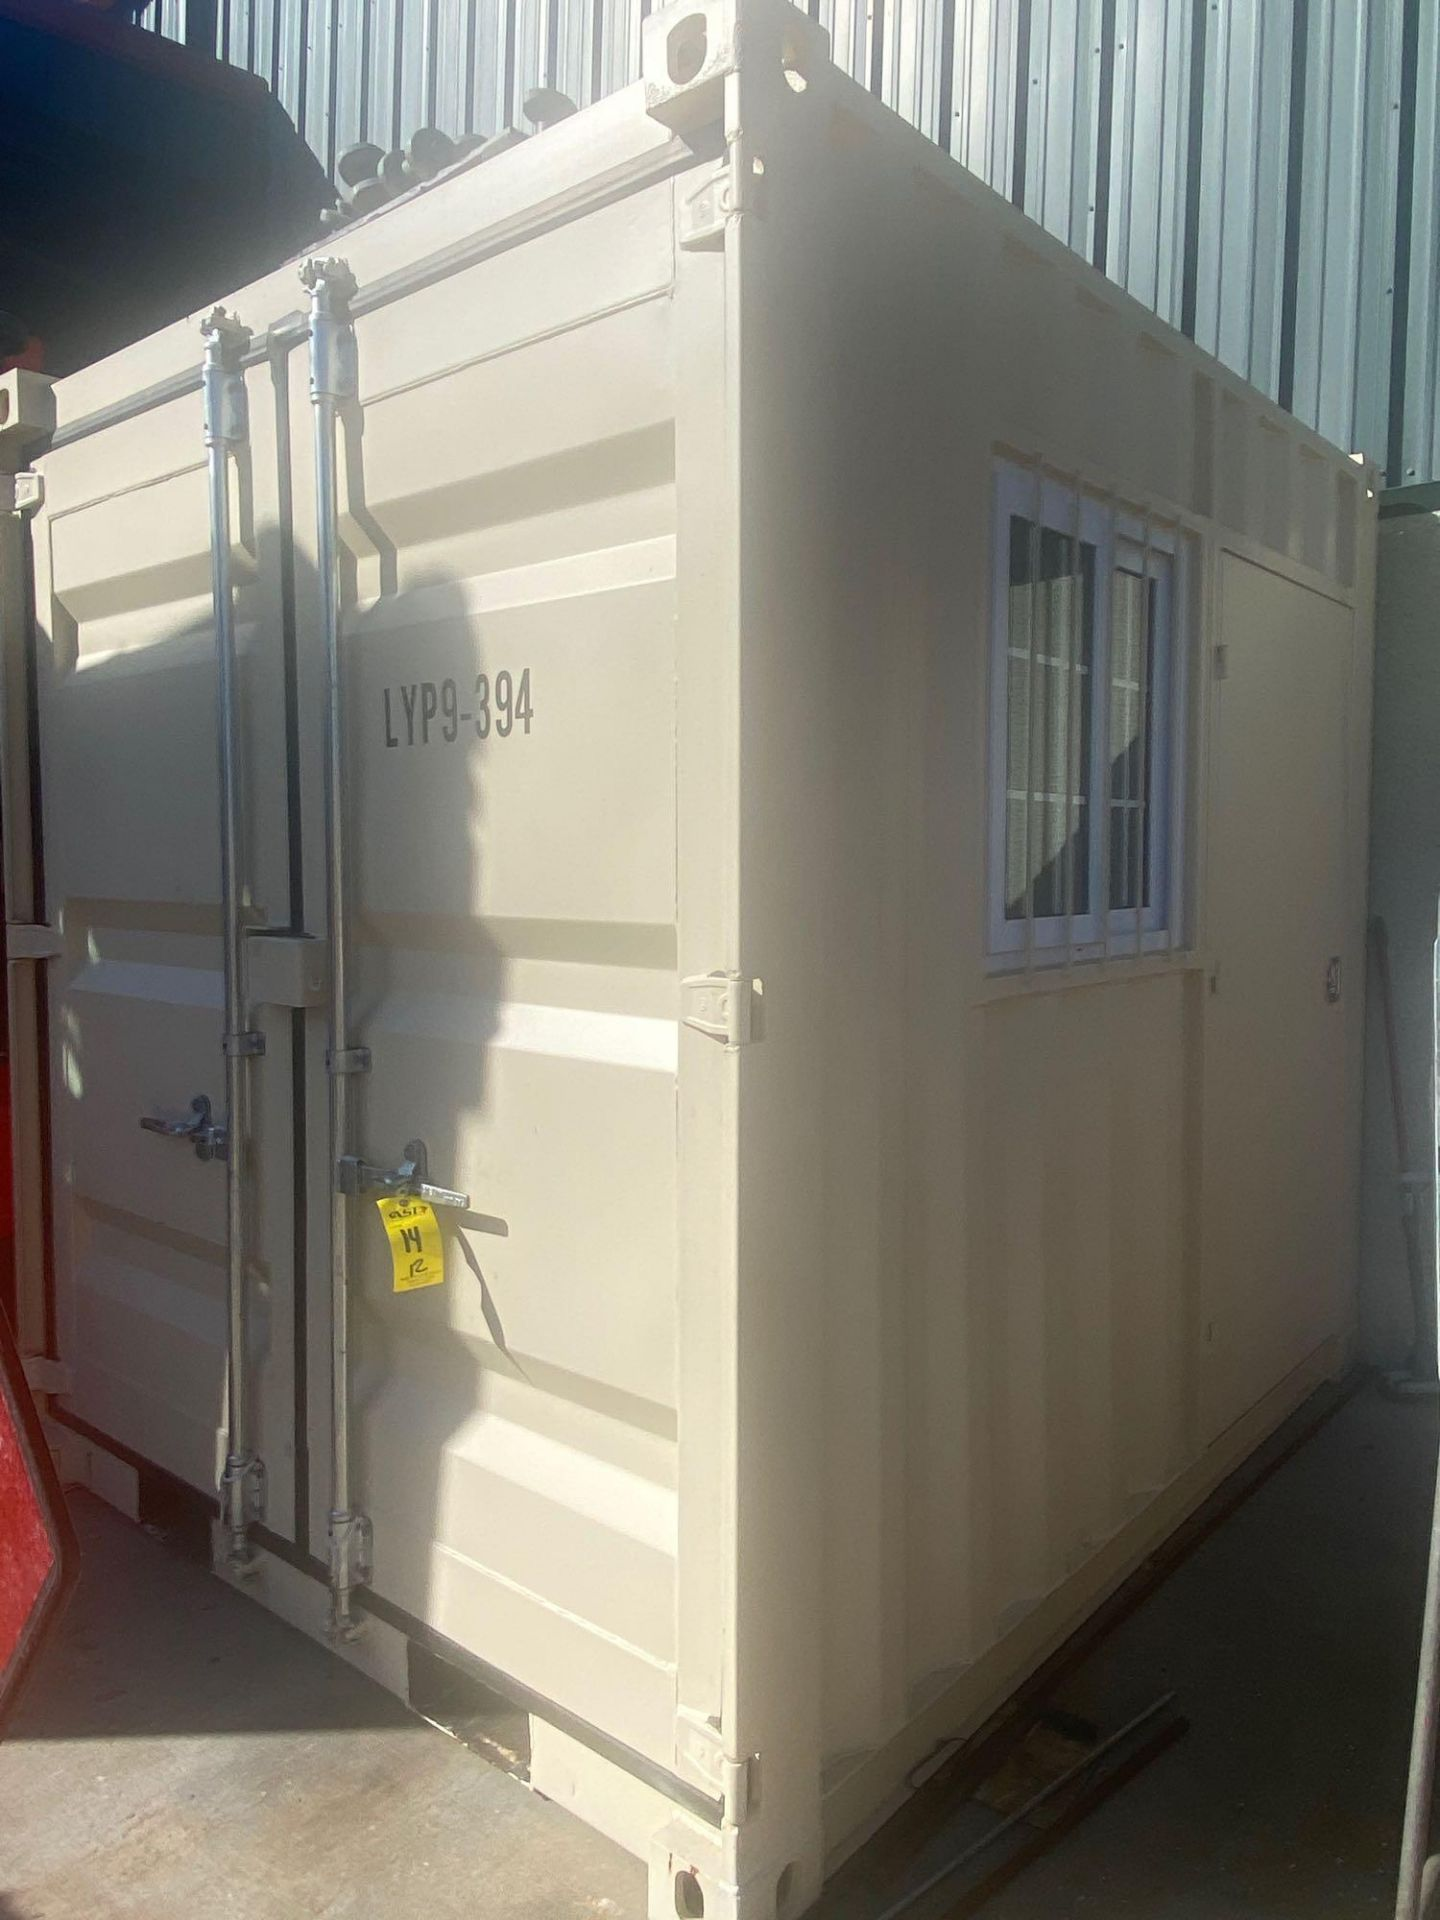 UNUSED 2020 SHIPPING/OFFICE CONTAINER WITH SIDE DOOR, FORK POCKETS, WINDOW - Image 2 of 5